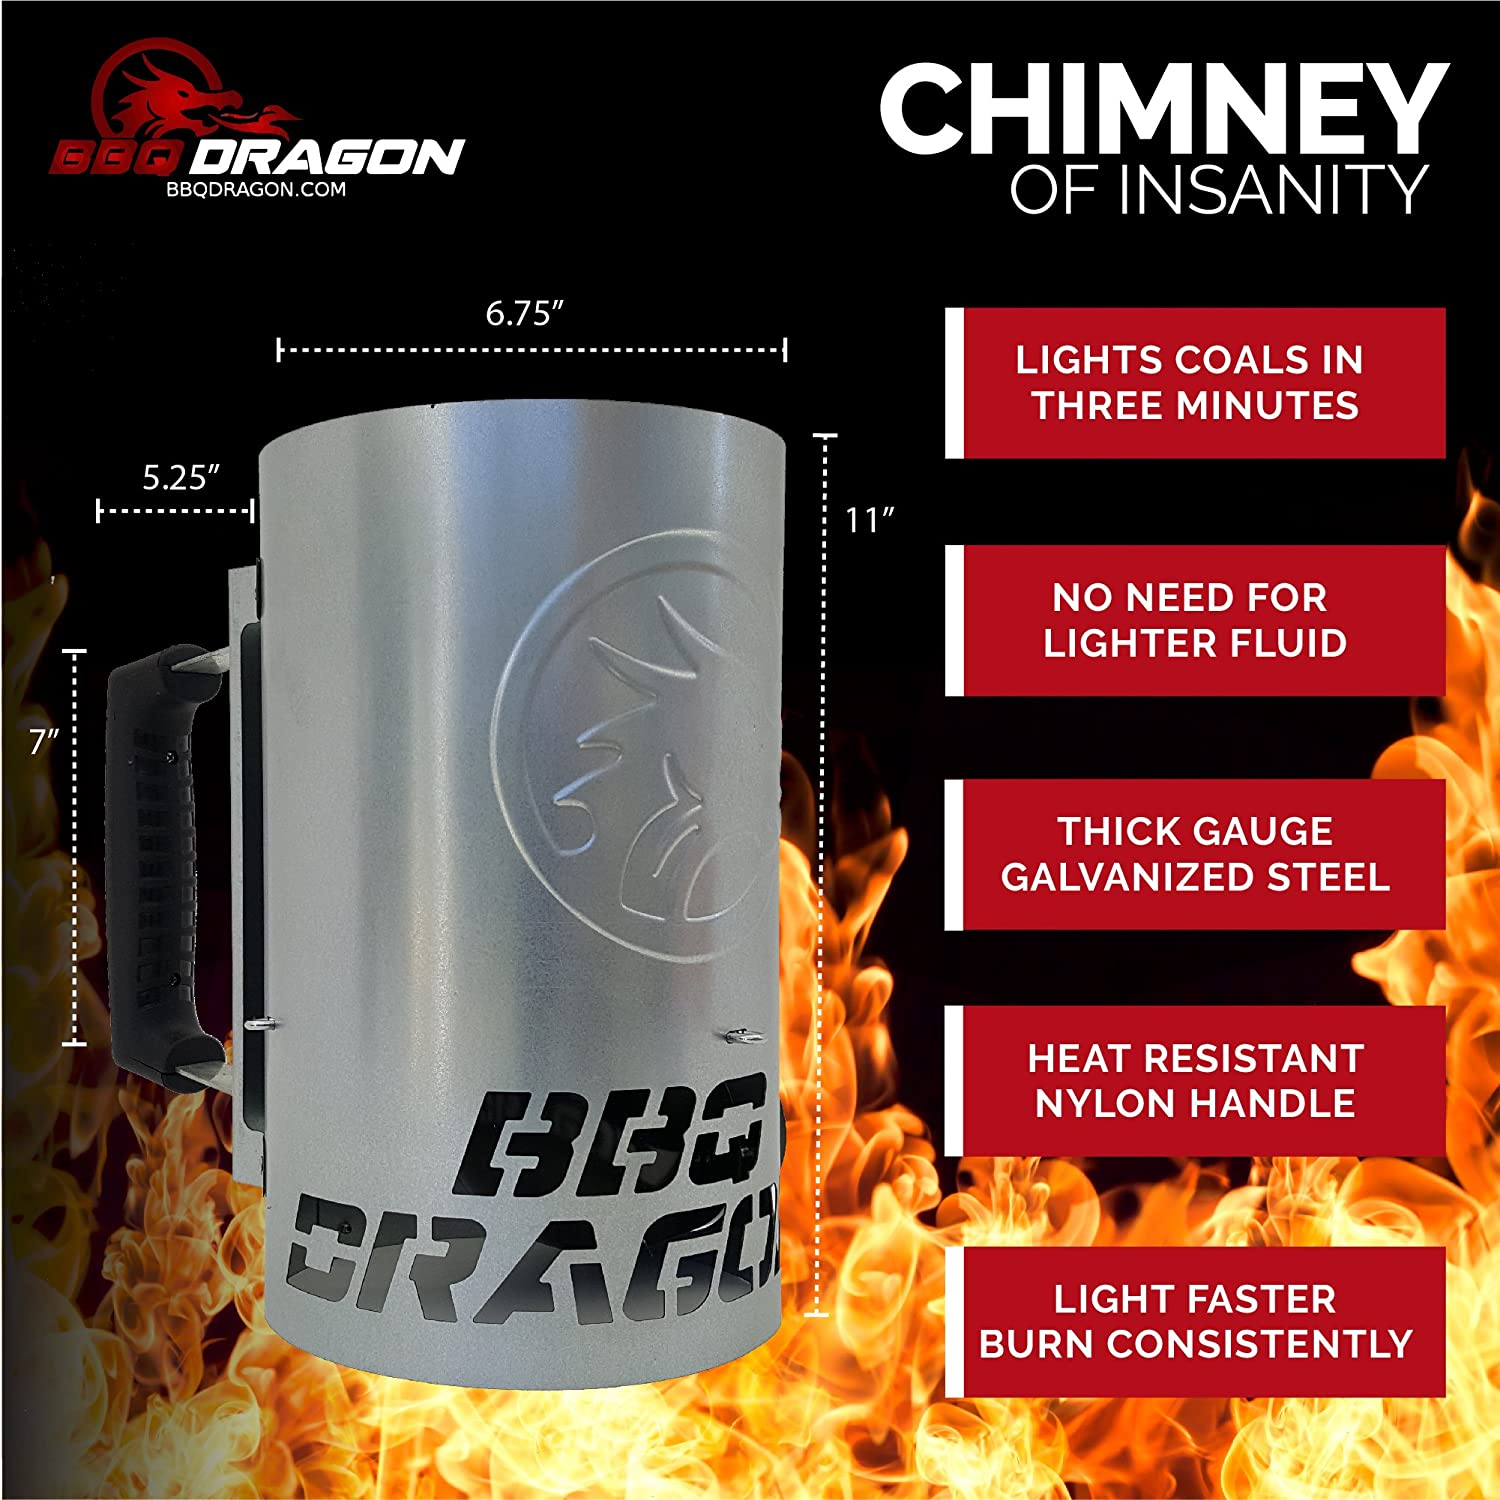 BBQ Dragon Chimney of Insanity Charcoal Starter - The Fastest and Easiest Charcoal Chimney Starter for BBQ Grills : Garden & Outdoor